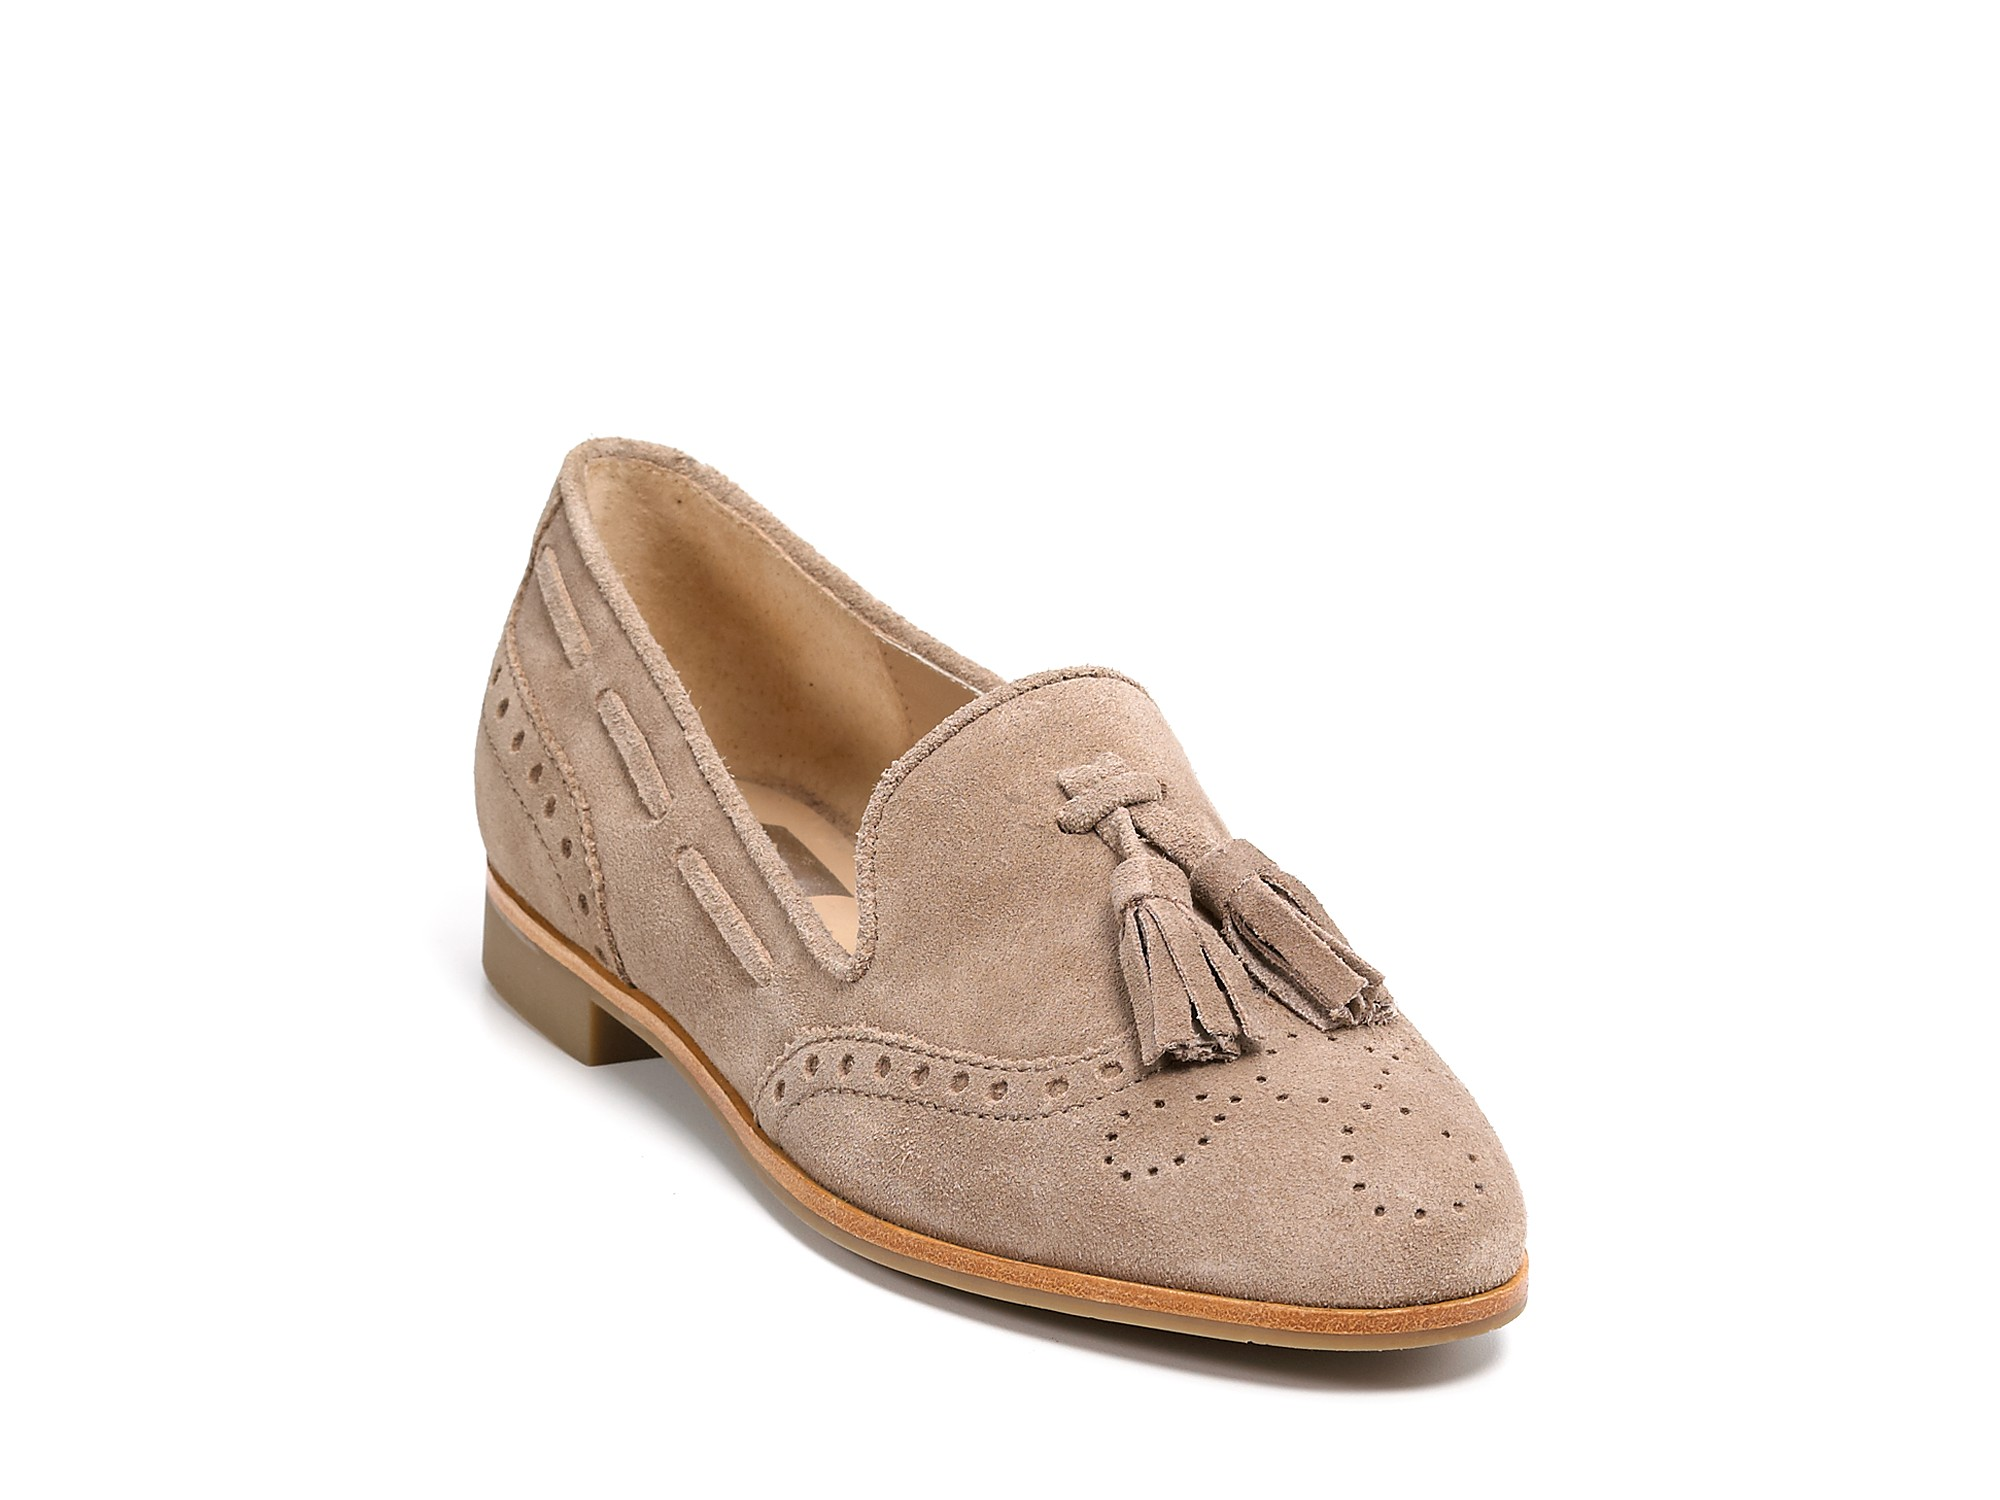 84adfd96f Dolce Vita Dv Marcel Suede Oxford Loafers in Brown - Lyst